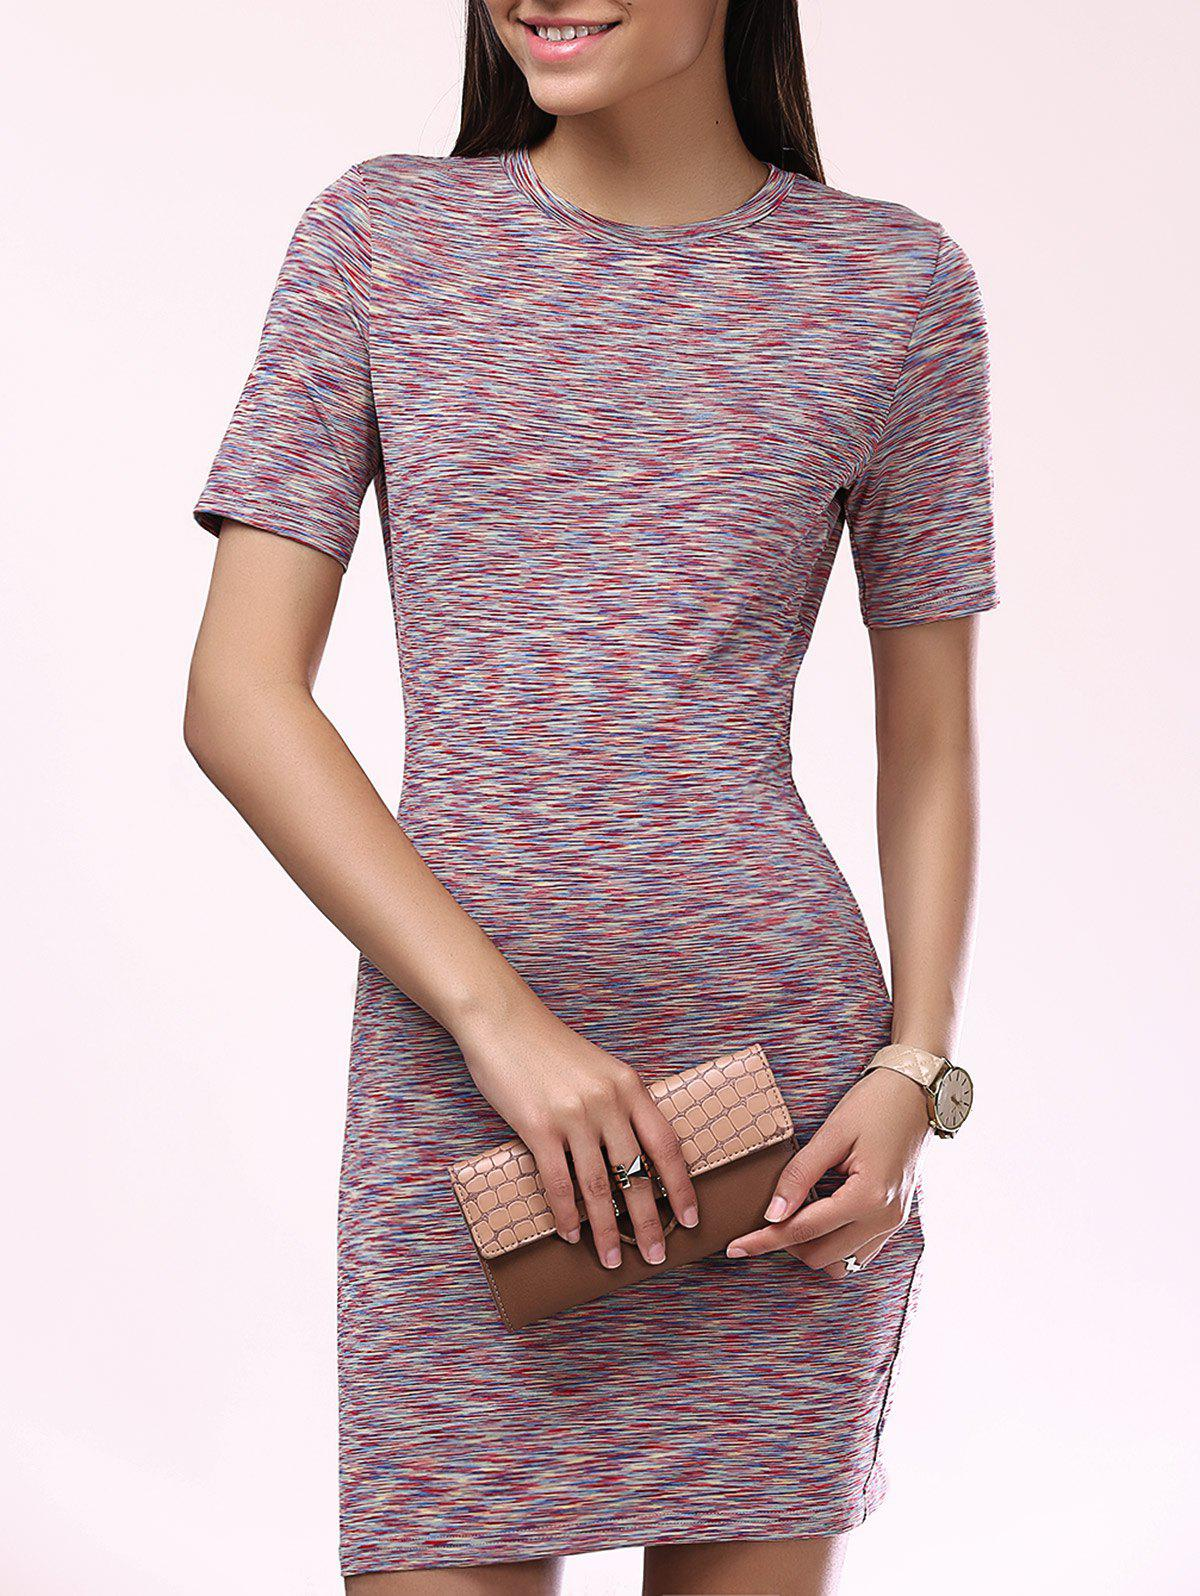 Fashionable Scoop Neck Slim Short Sleeves Dress For Women - L COLORMIX